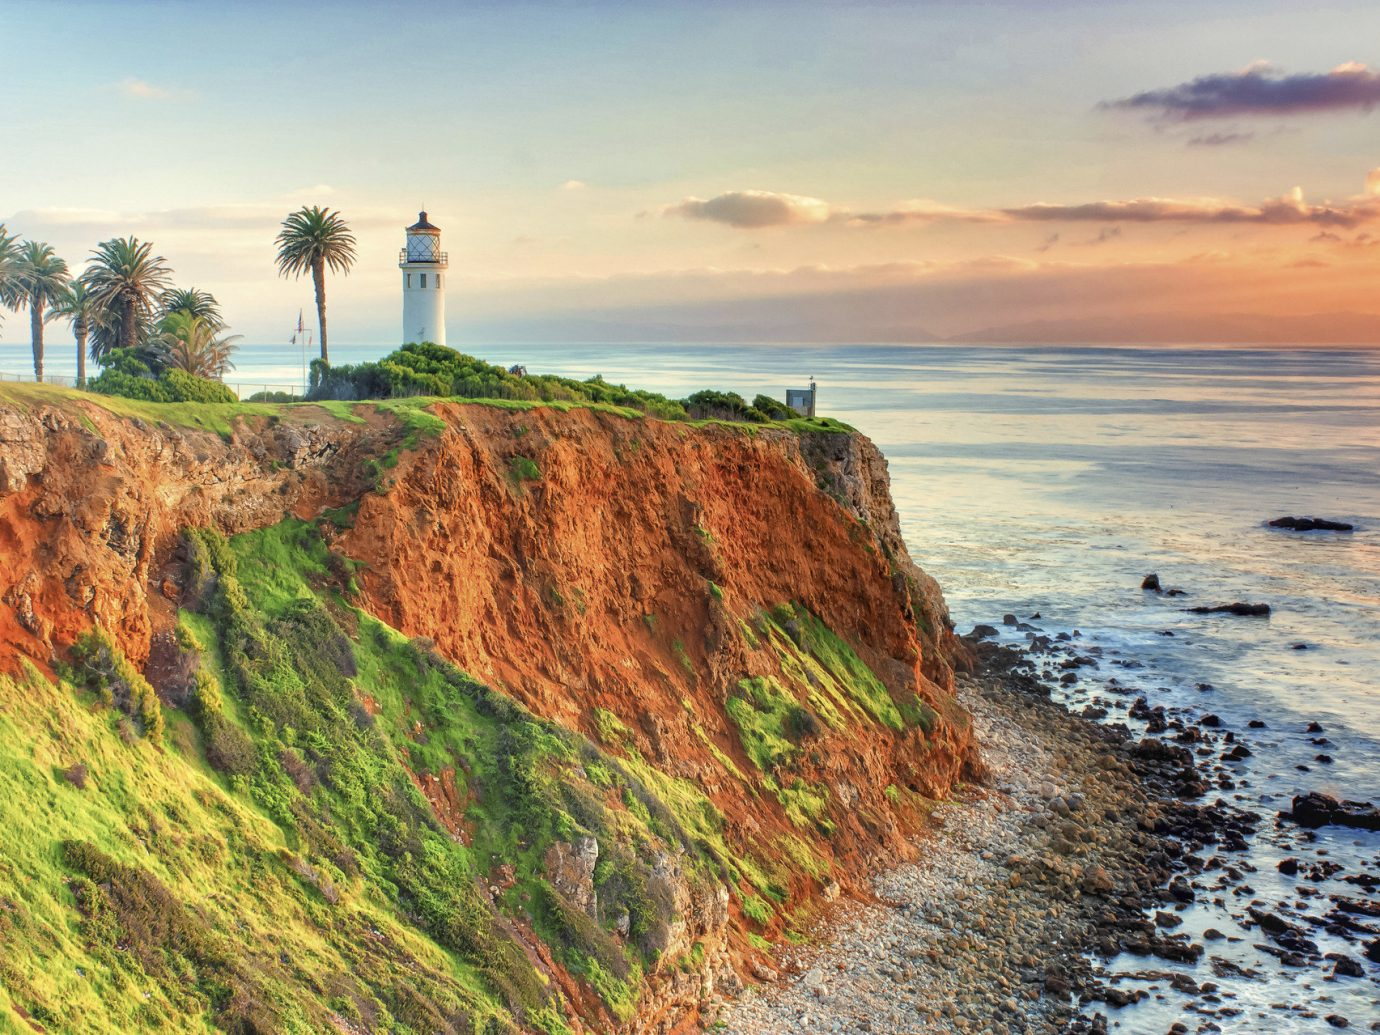 sky outdoor Coast cliff shore tower Sea Nature lighthouse Ocean horizon rock Beach terrain hill cloud cape landscape cove wave bay waterway Sunset